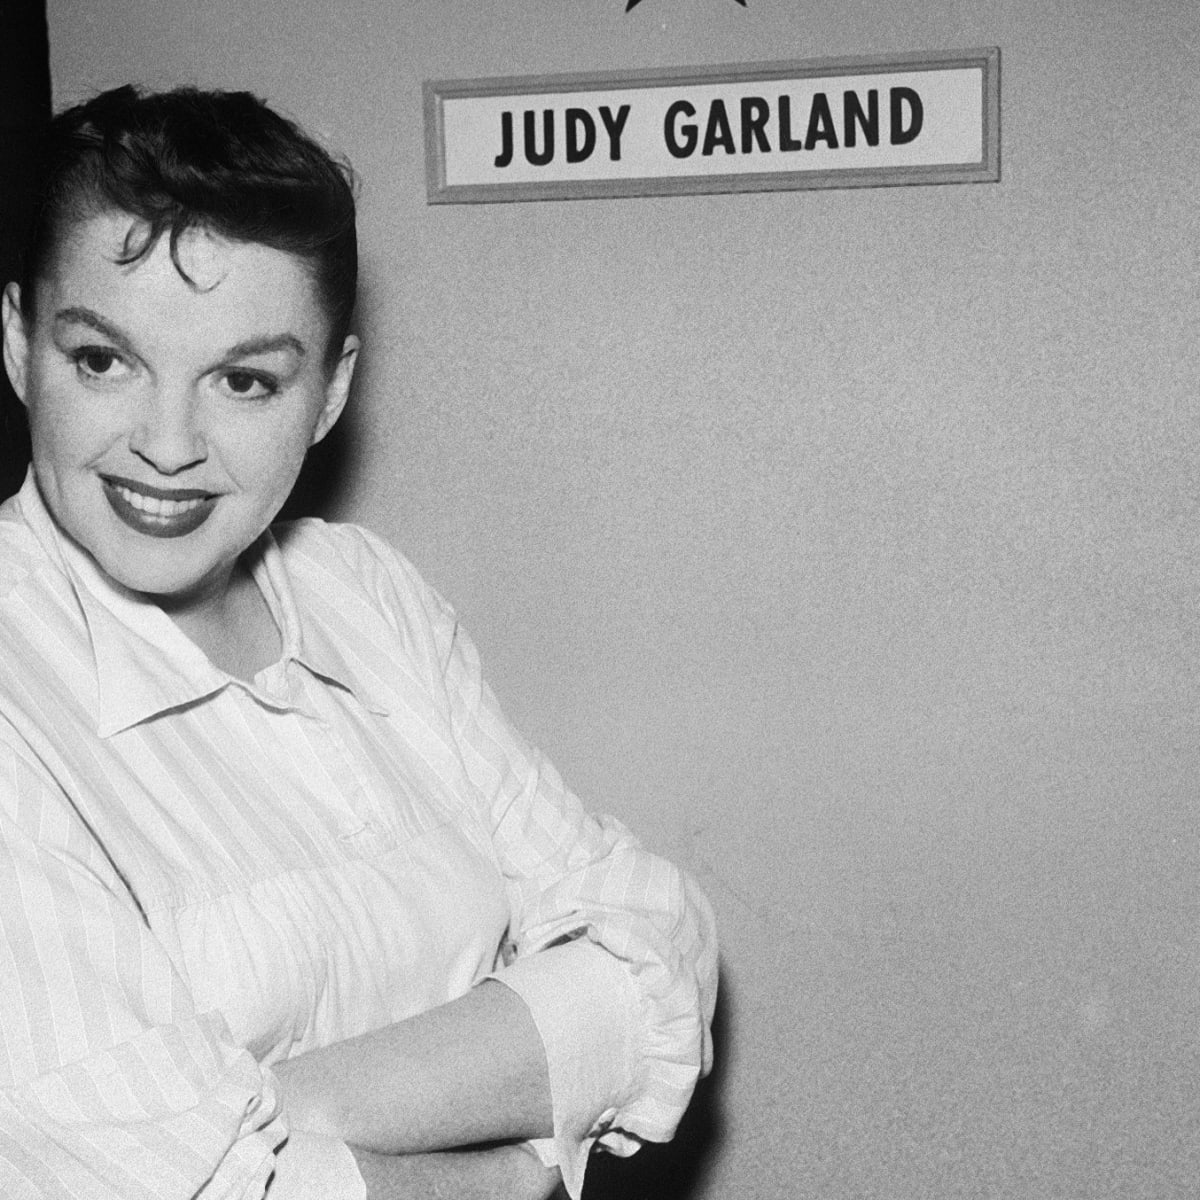 Judy Garland S Personal Life Was A Search For Happiness She Often